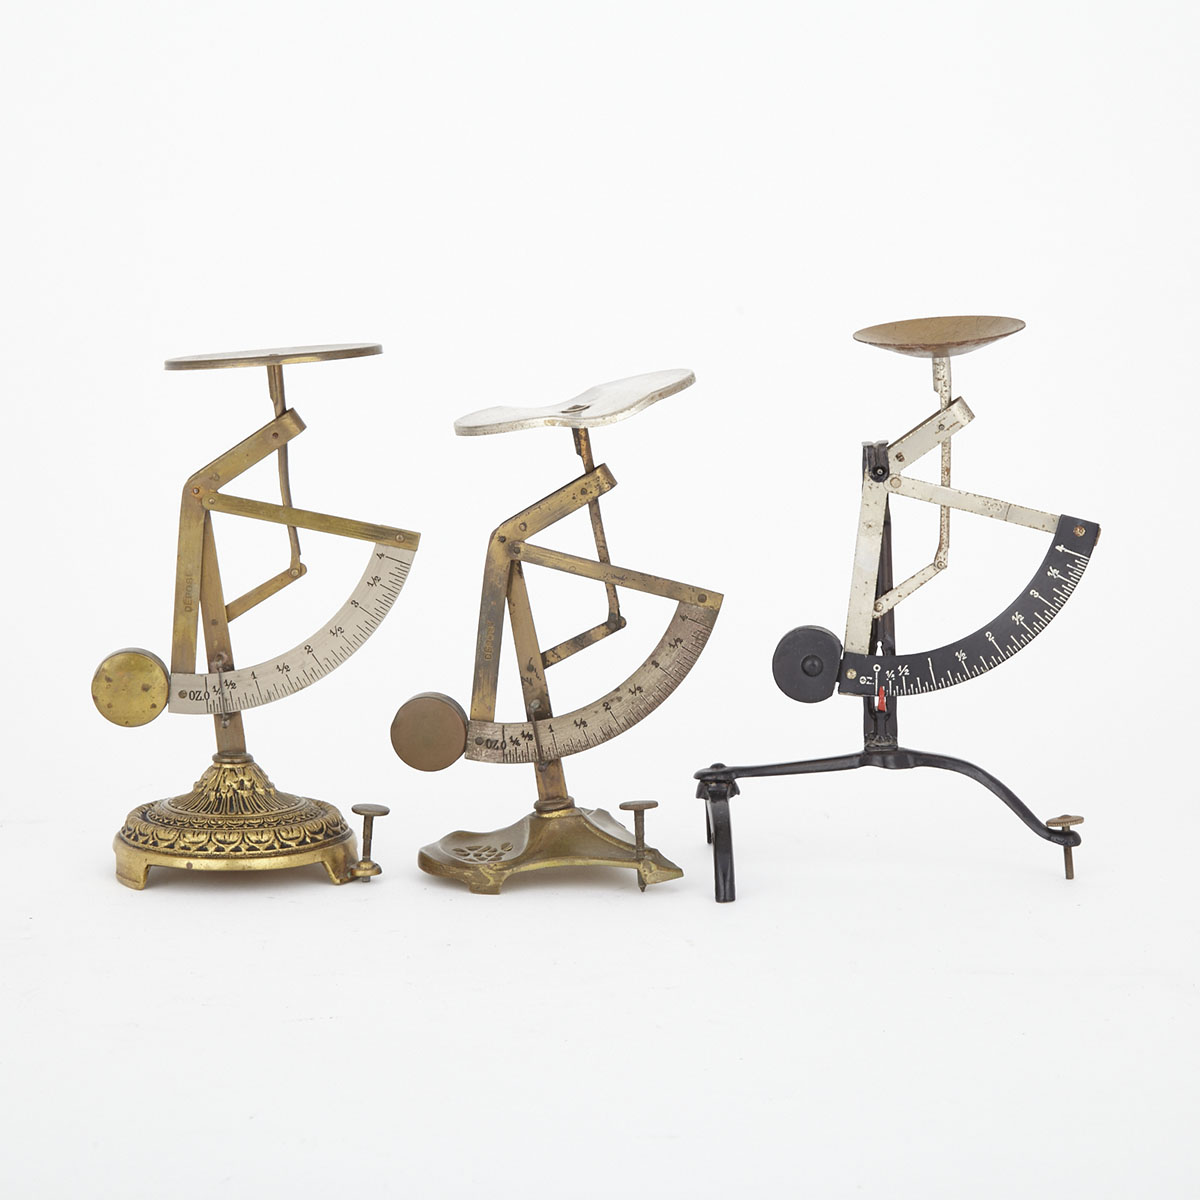 Three Continental Postal Scales, 19th and early 20th centuries